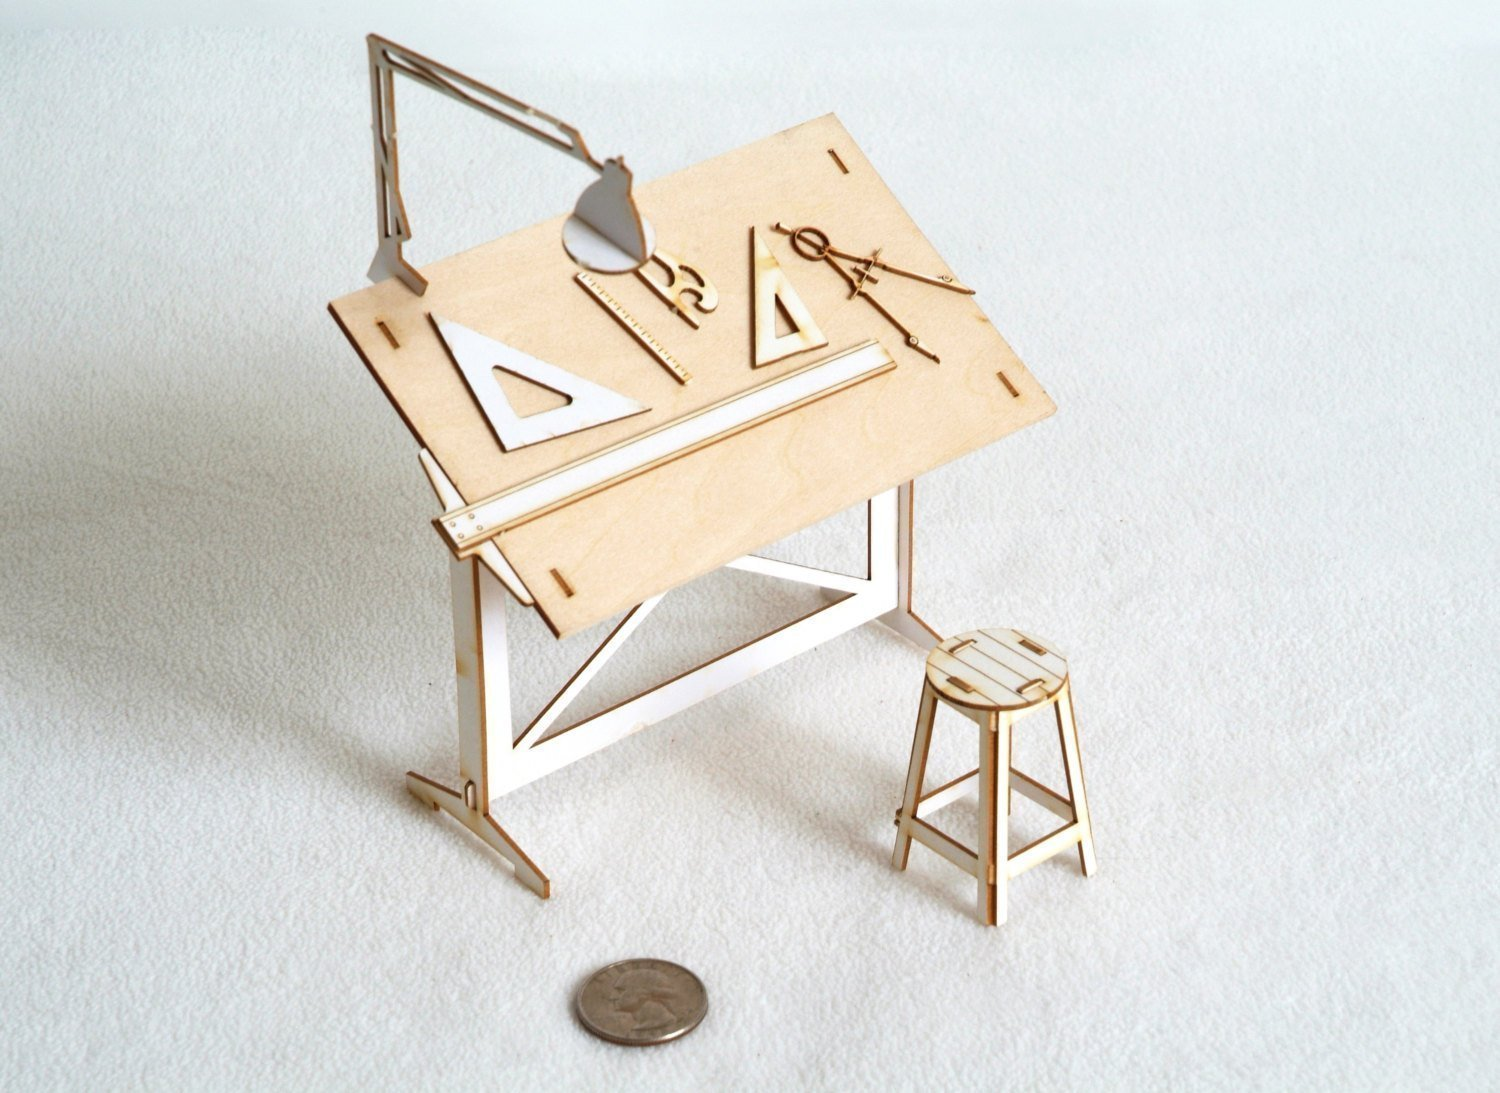 Superior Amazon.com: Miniature Drafting Table Model Kit Lasercut Architectural DIY  Model With Real Wood Tabletop: Handmade